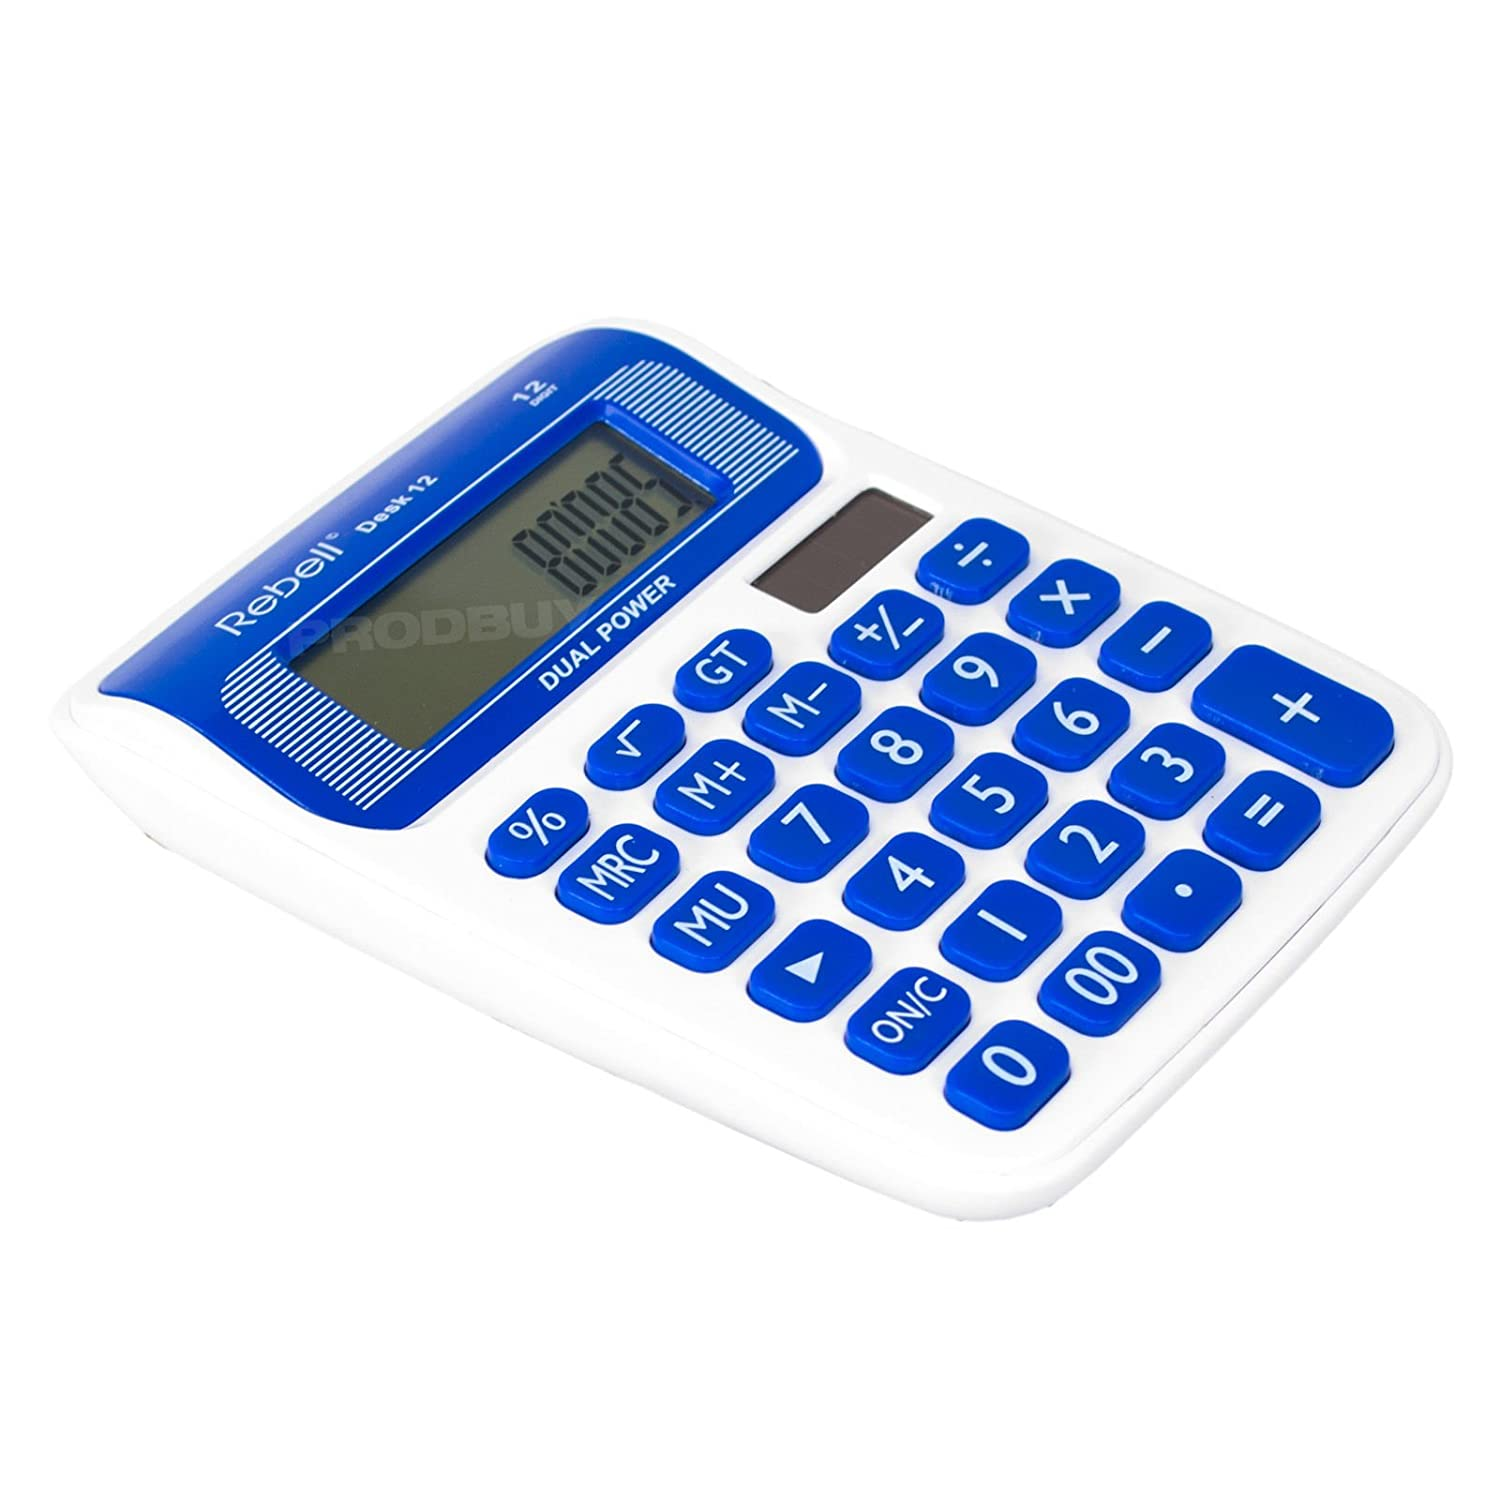 Rebell 12 Digit Dual Power Calculator Blue /& White Desk Desktop Office Small